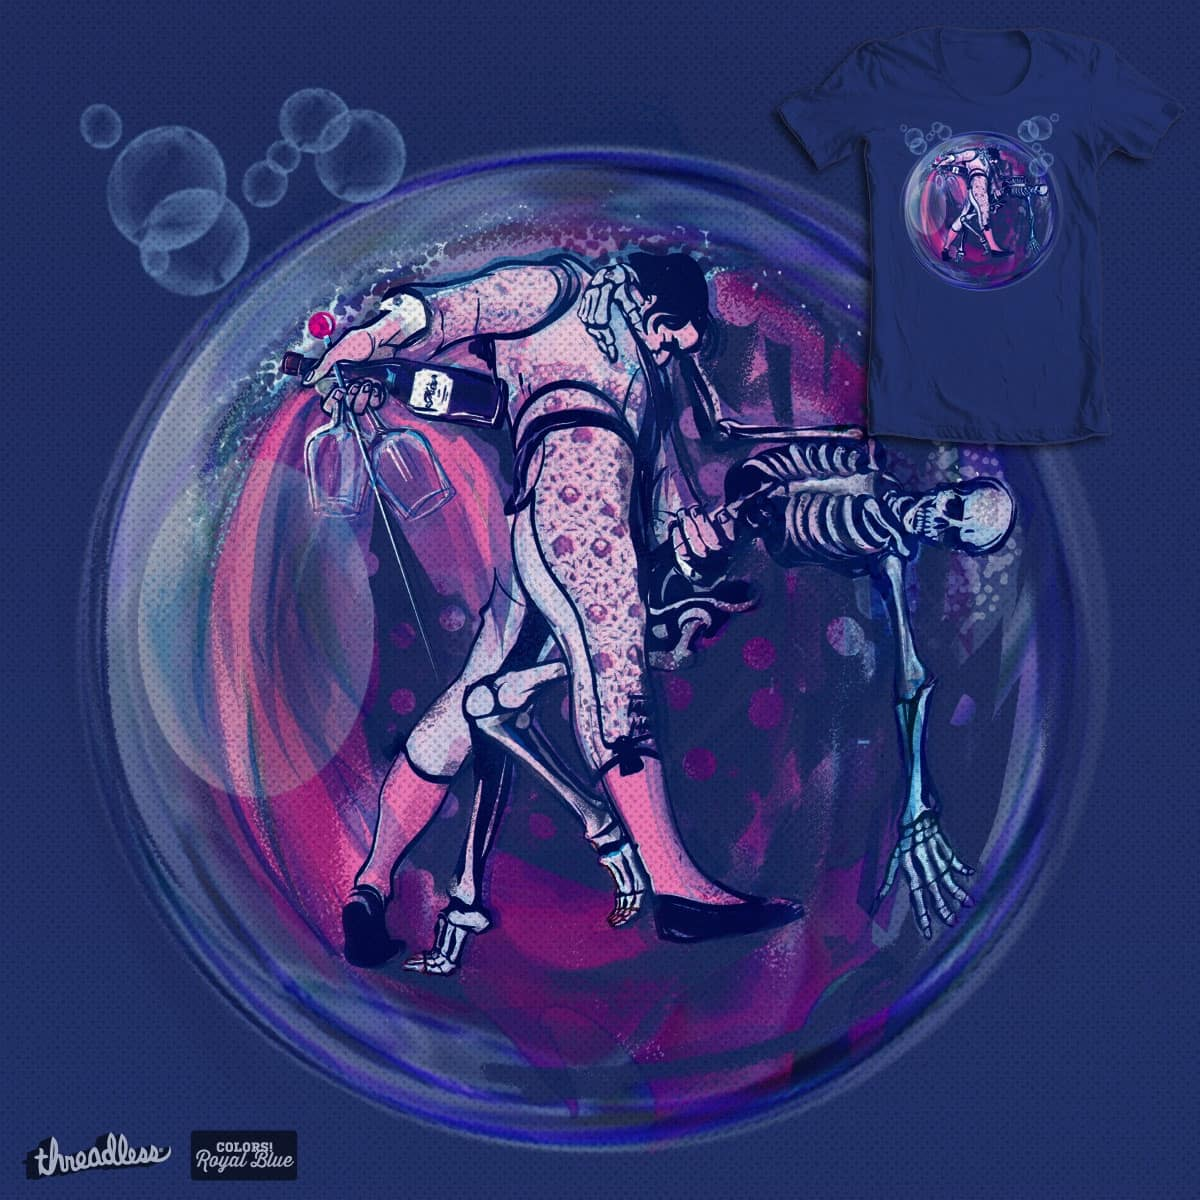 Royal bubble by dyefly on Threadless